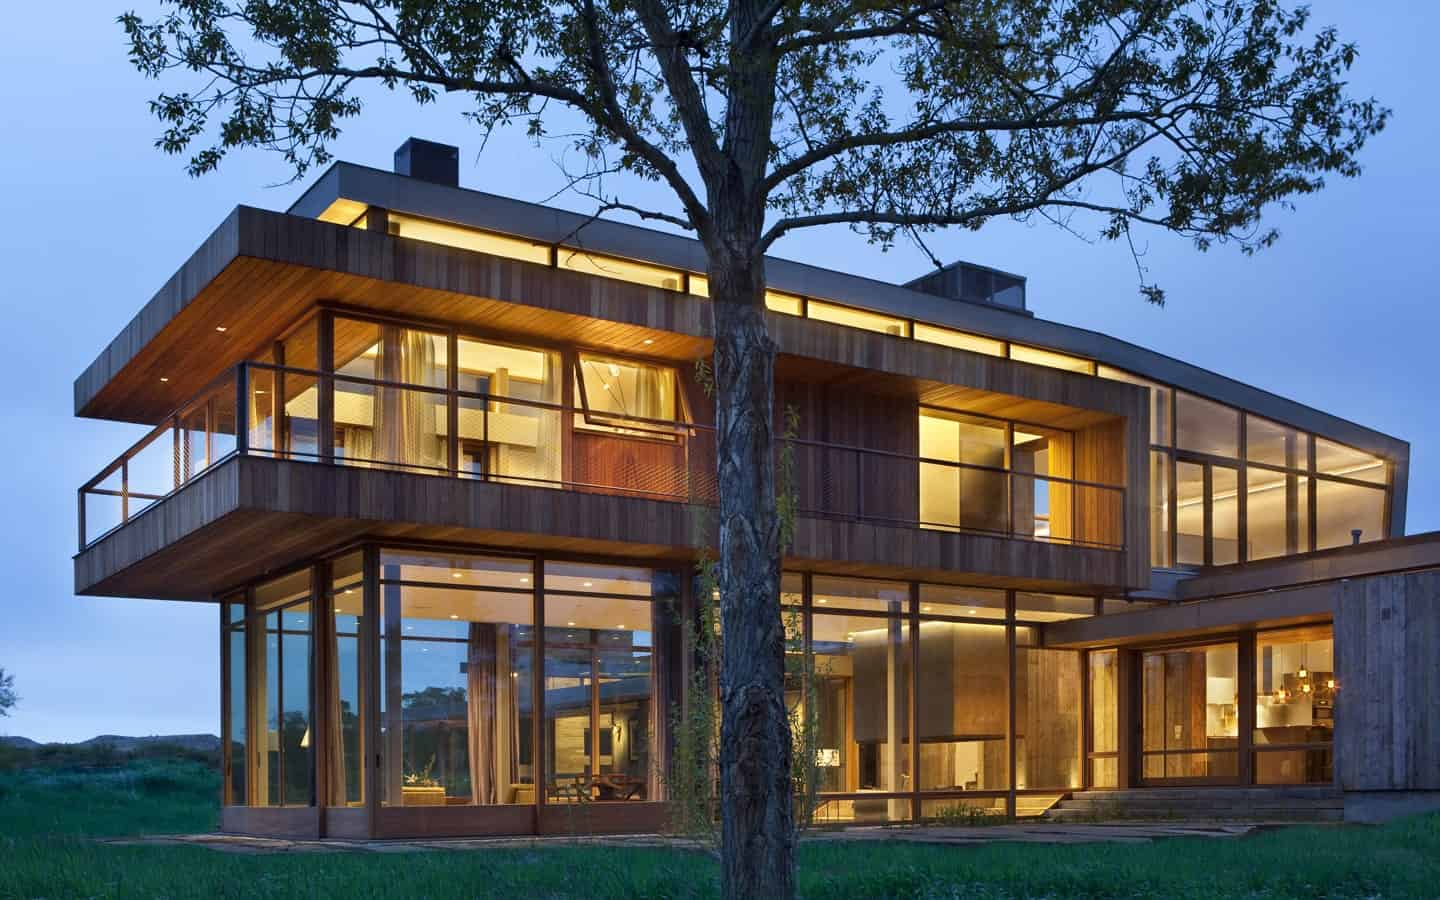 This is the back of the house showing massive floor to ceiling windows accented with wood planks. It sits on an expanive lush lawn.